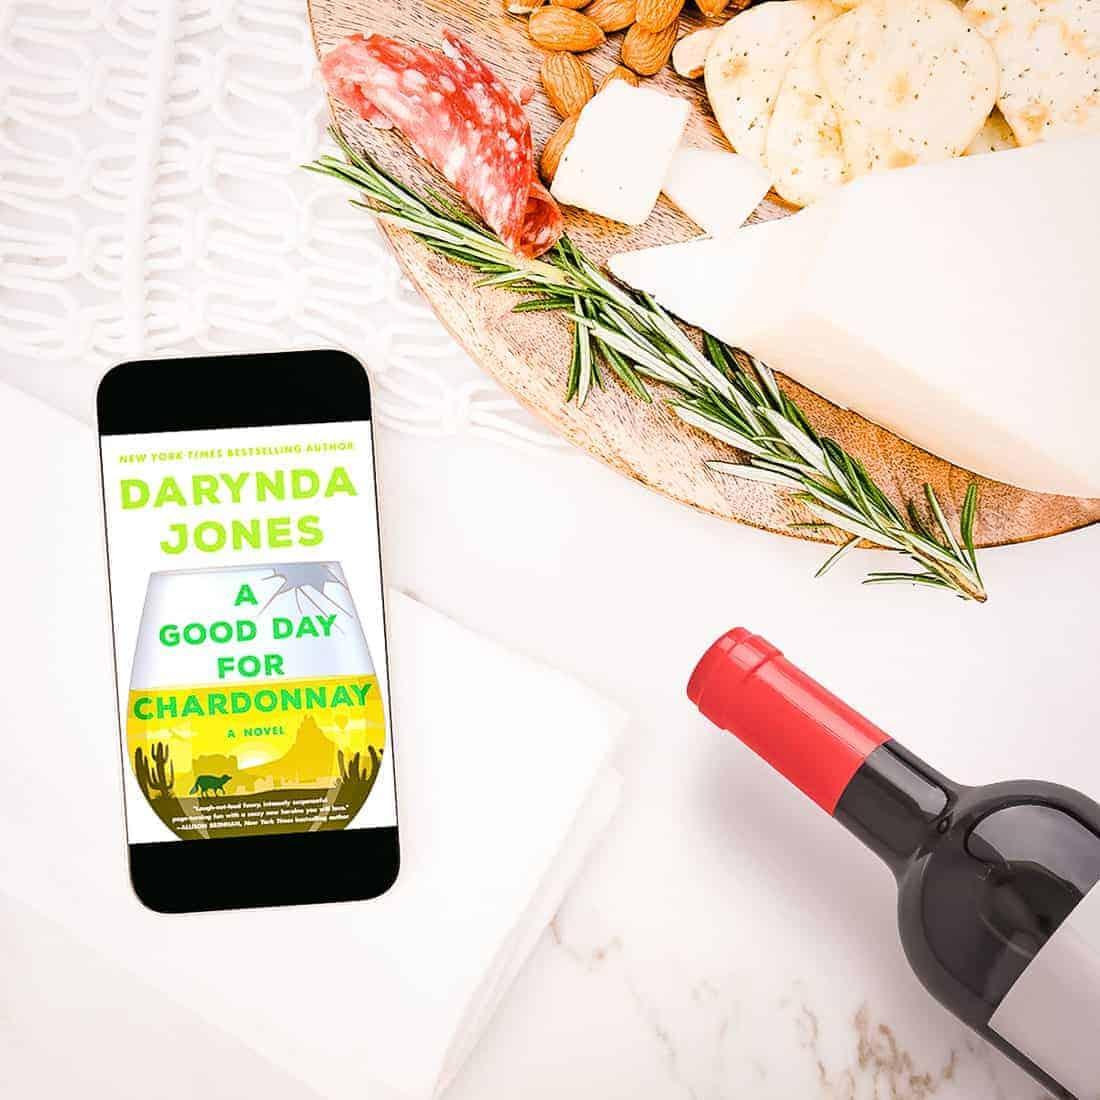 A Good Day for Chardonnay is jam-packed with sass and sarcasm, heart and humor, twists and turns, all packaged up and delivered the way only Darynda Jones can.